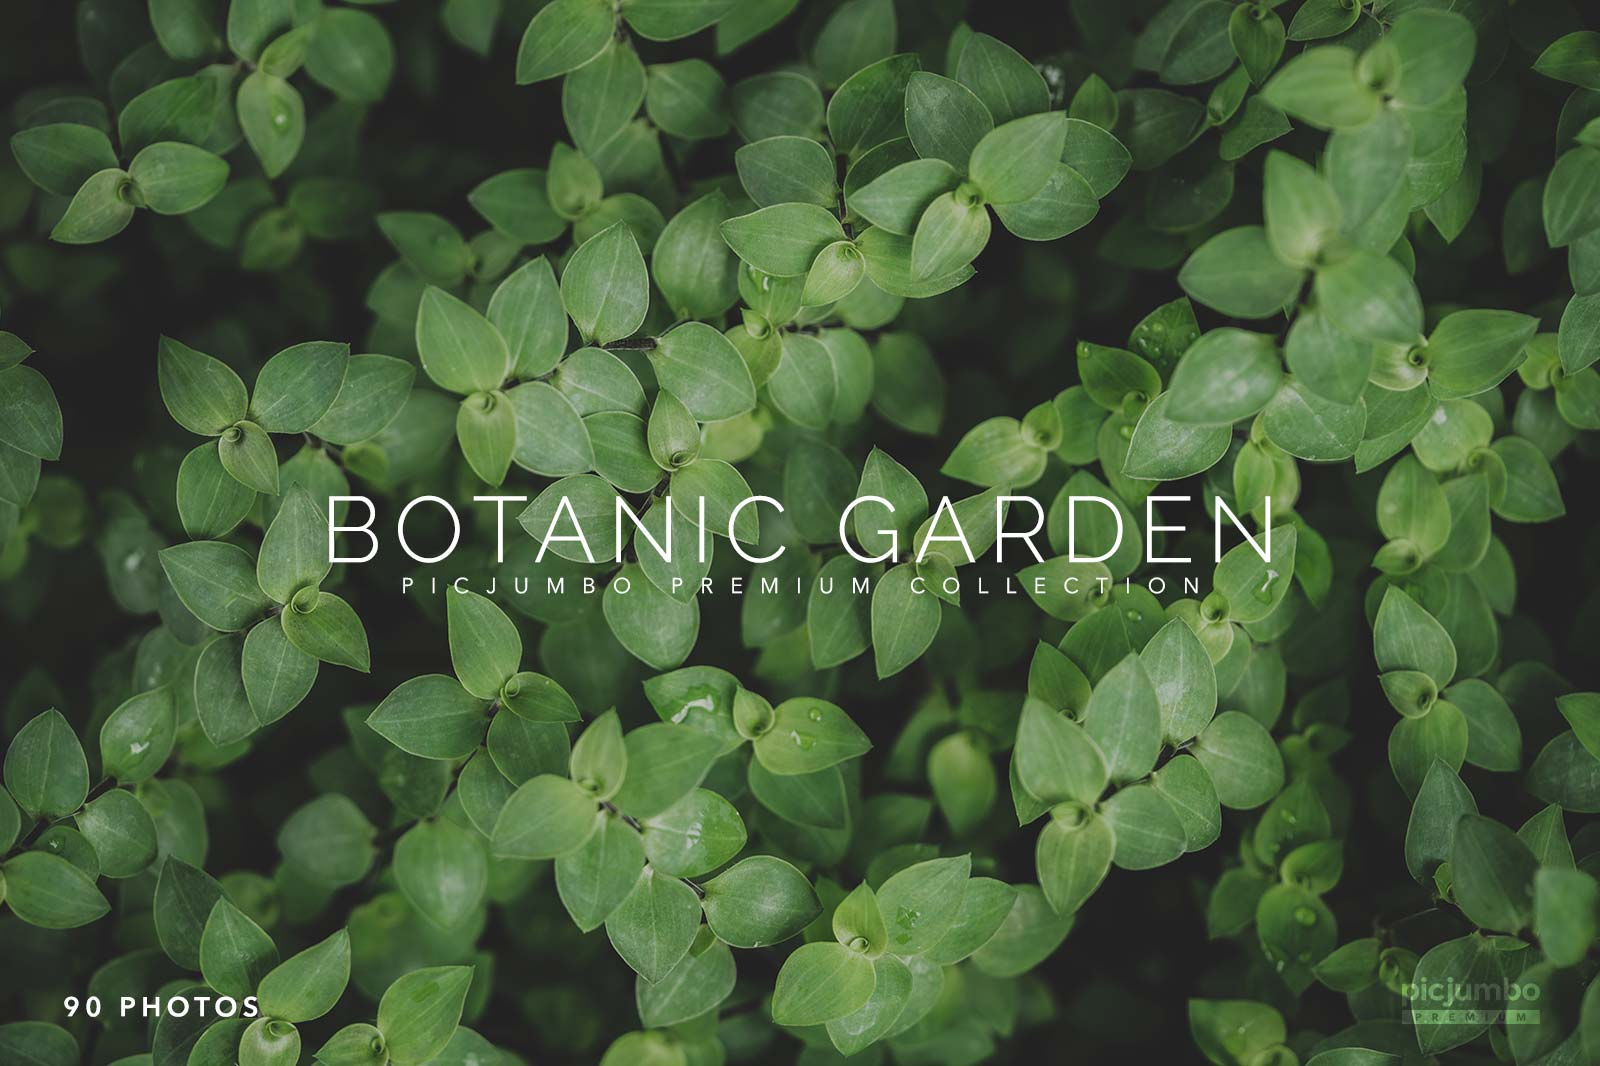 botanic-garden-premium-collection.jpg